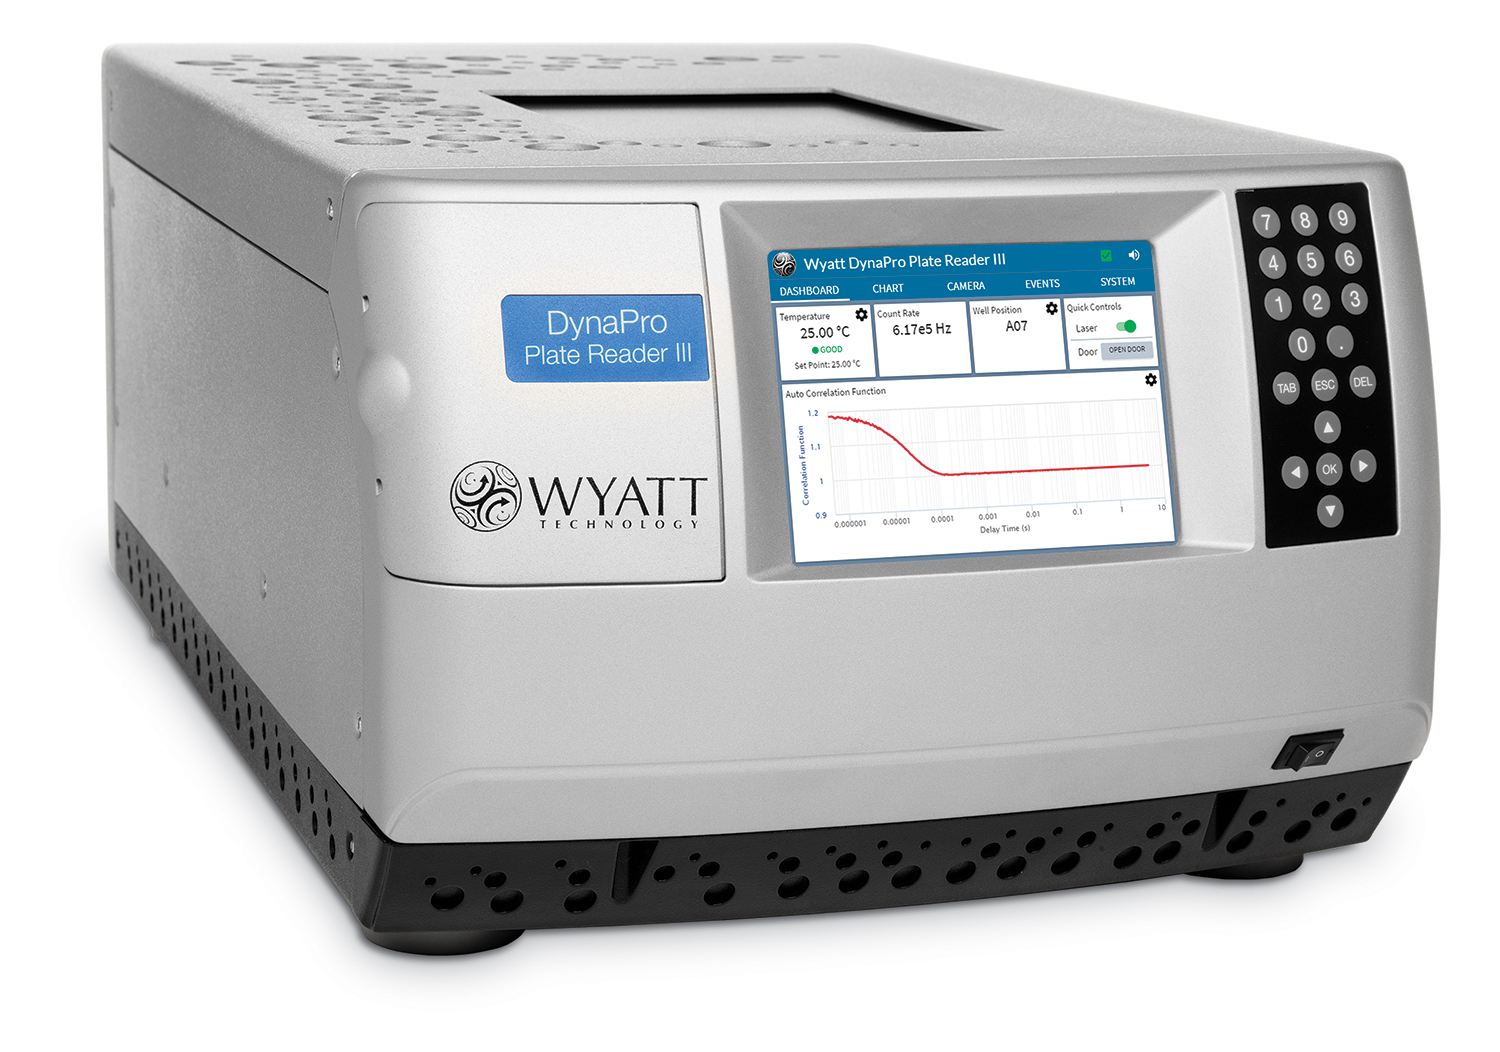 DynaPro Plate Reader, particle size analysis, nanoparticle size, nanoparticle analysis